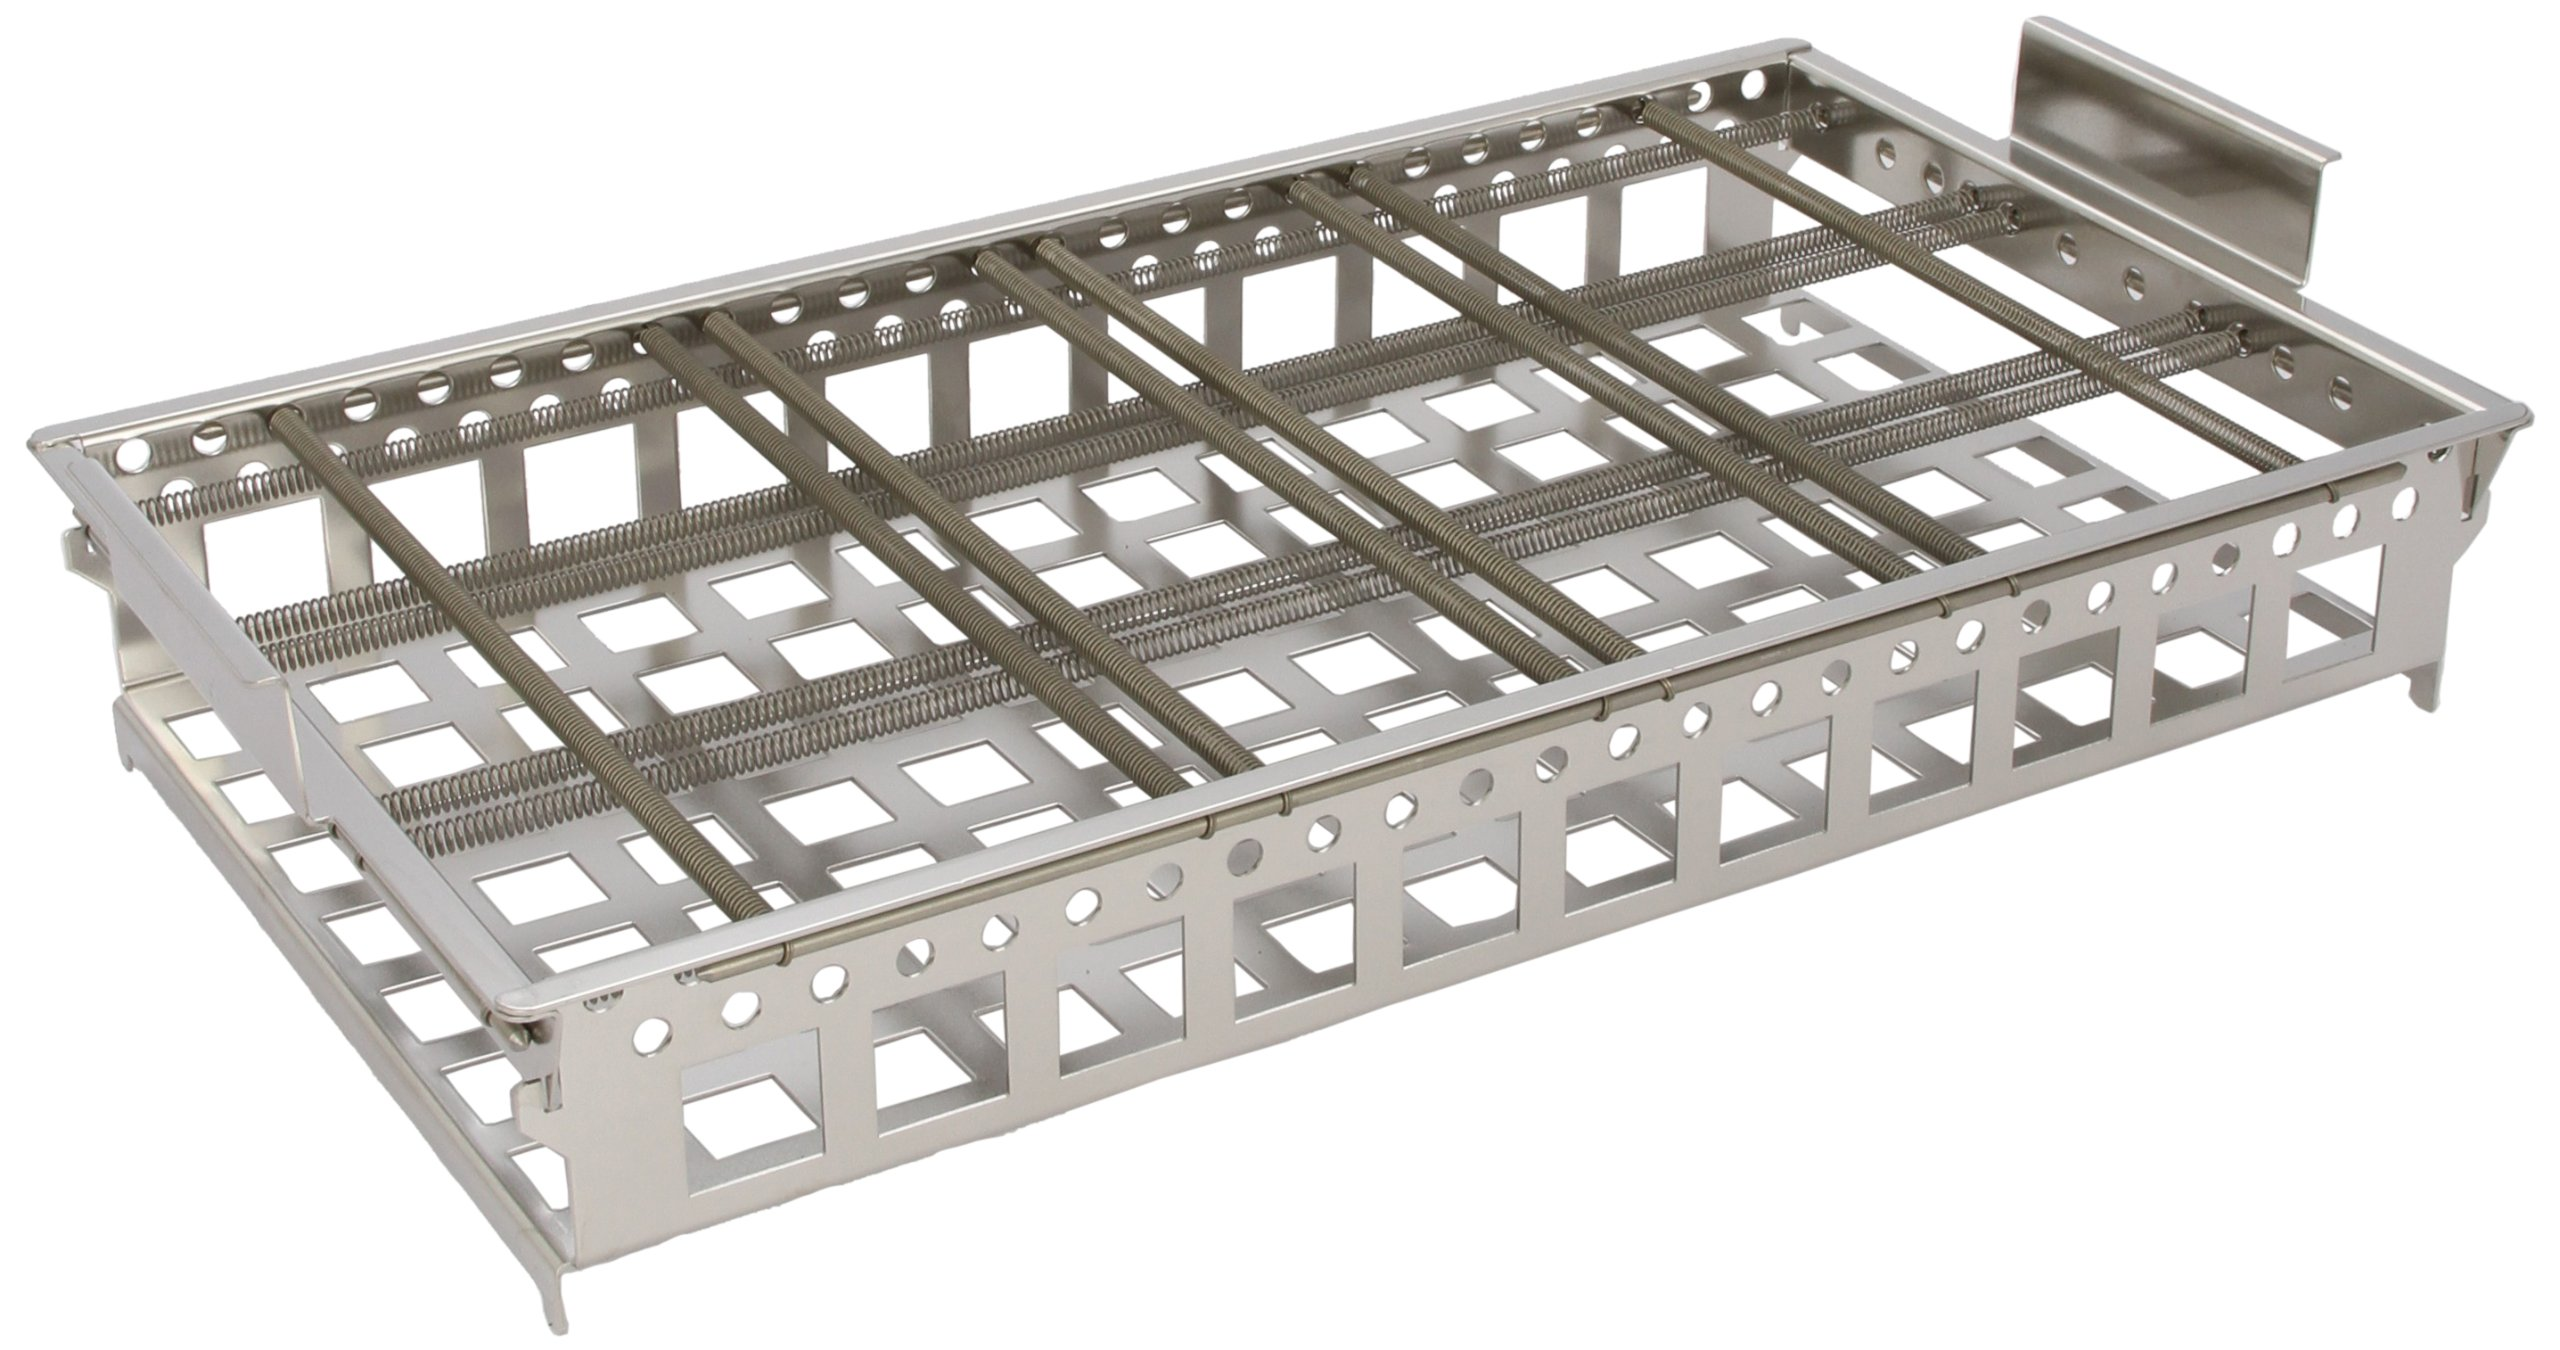 Grant Instruments UT18 Universal Tray with Spring, For GLS Aqua 18 Plus Series Linear Shaking Water Bath